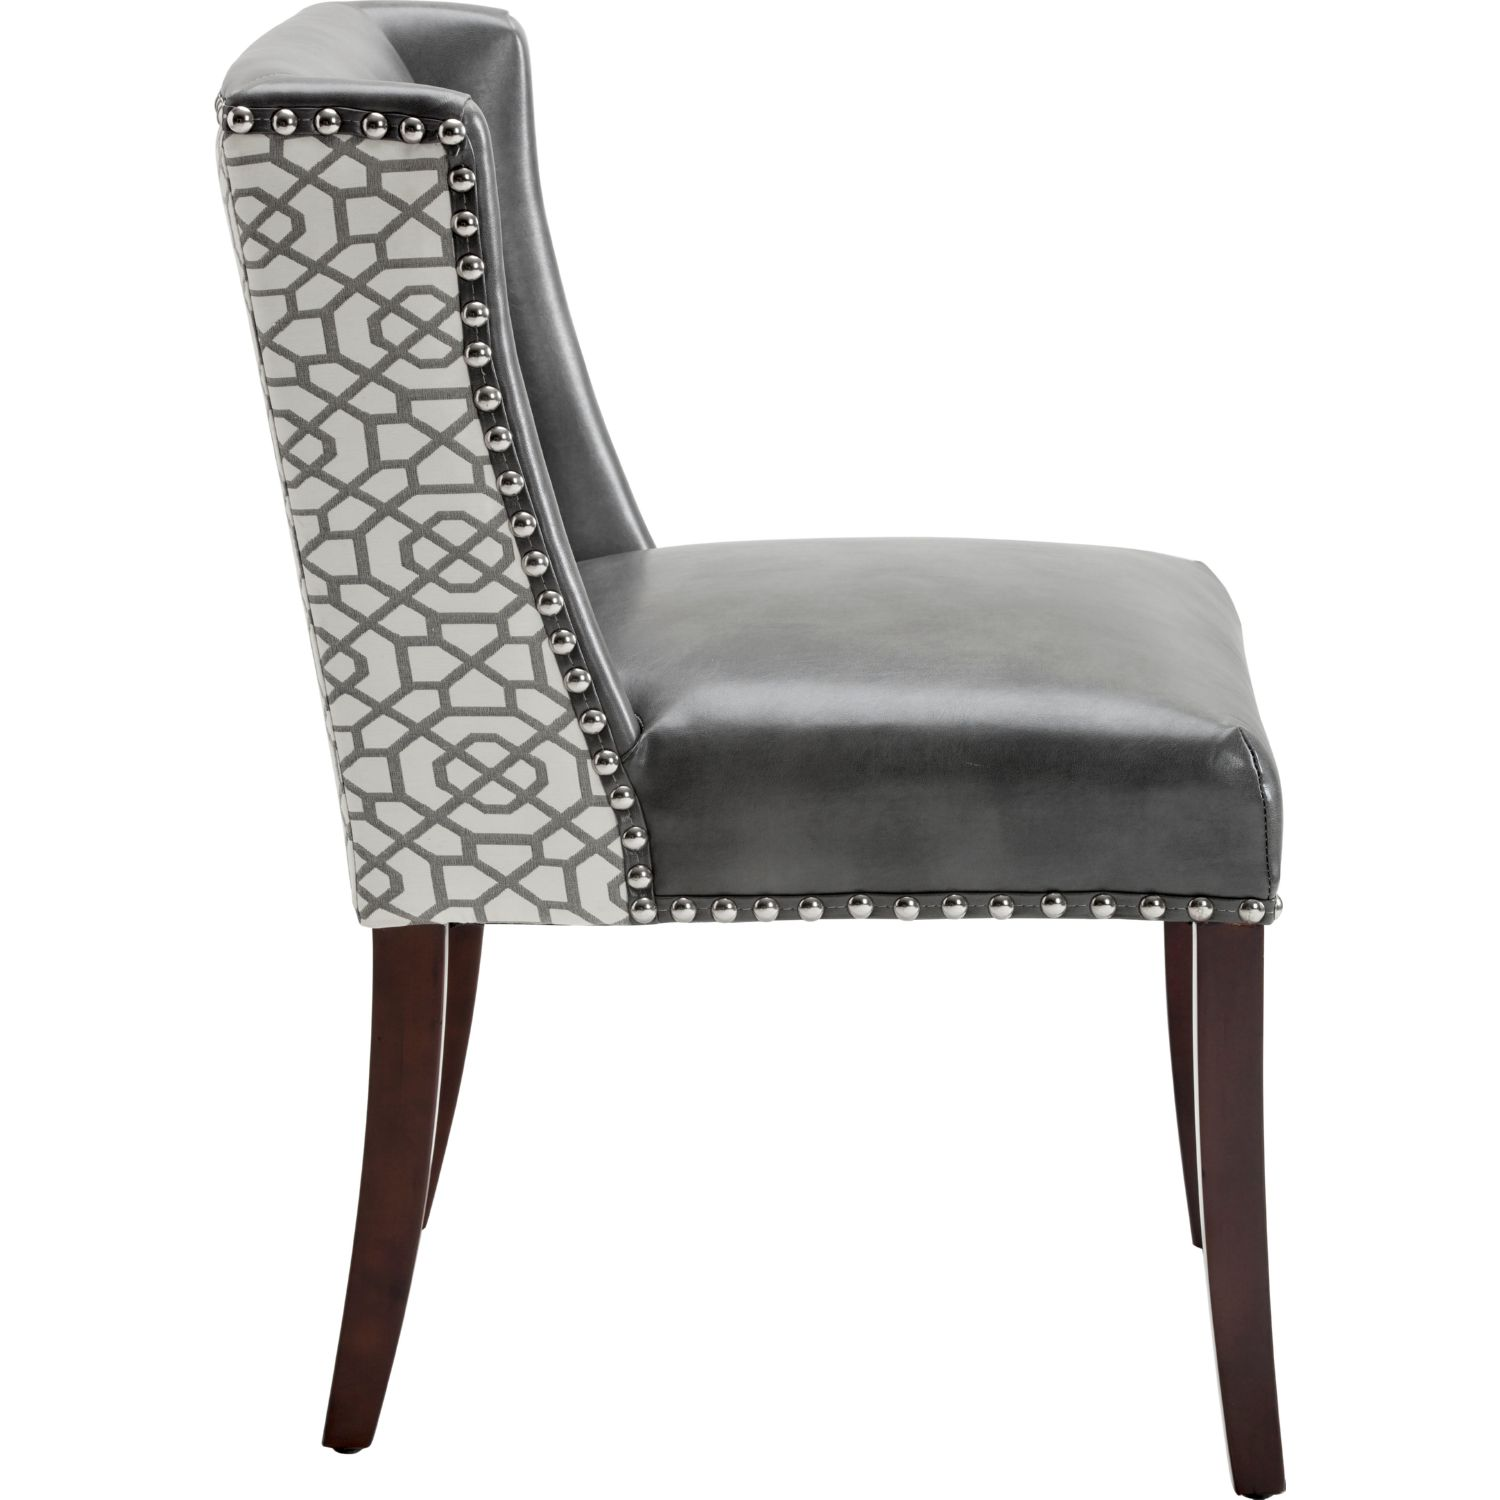 modern leather dining chairs australia wheelchair man sunpan 101088 marlin chair in nobility grey